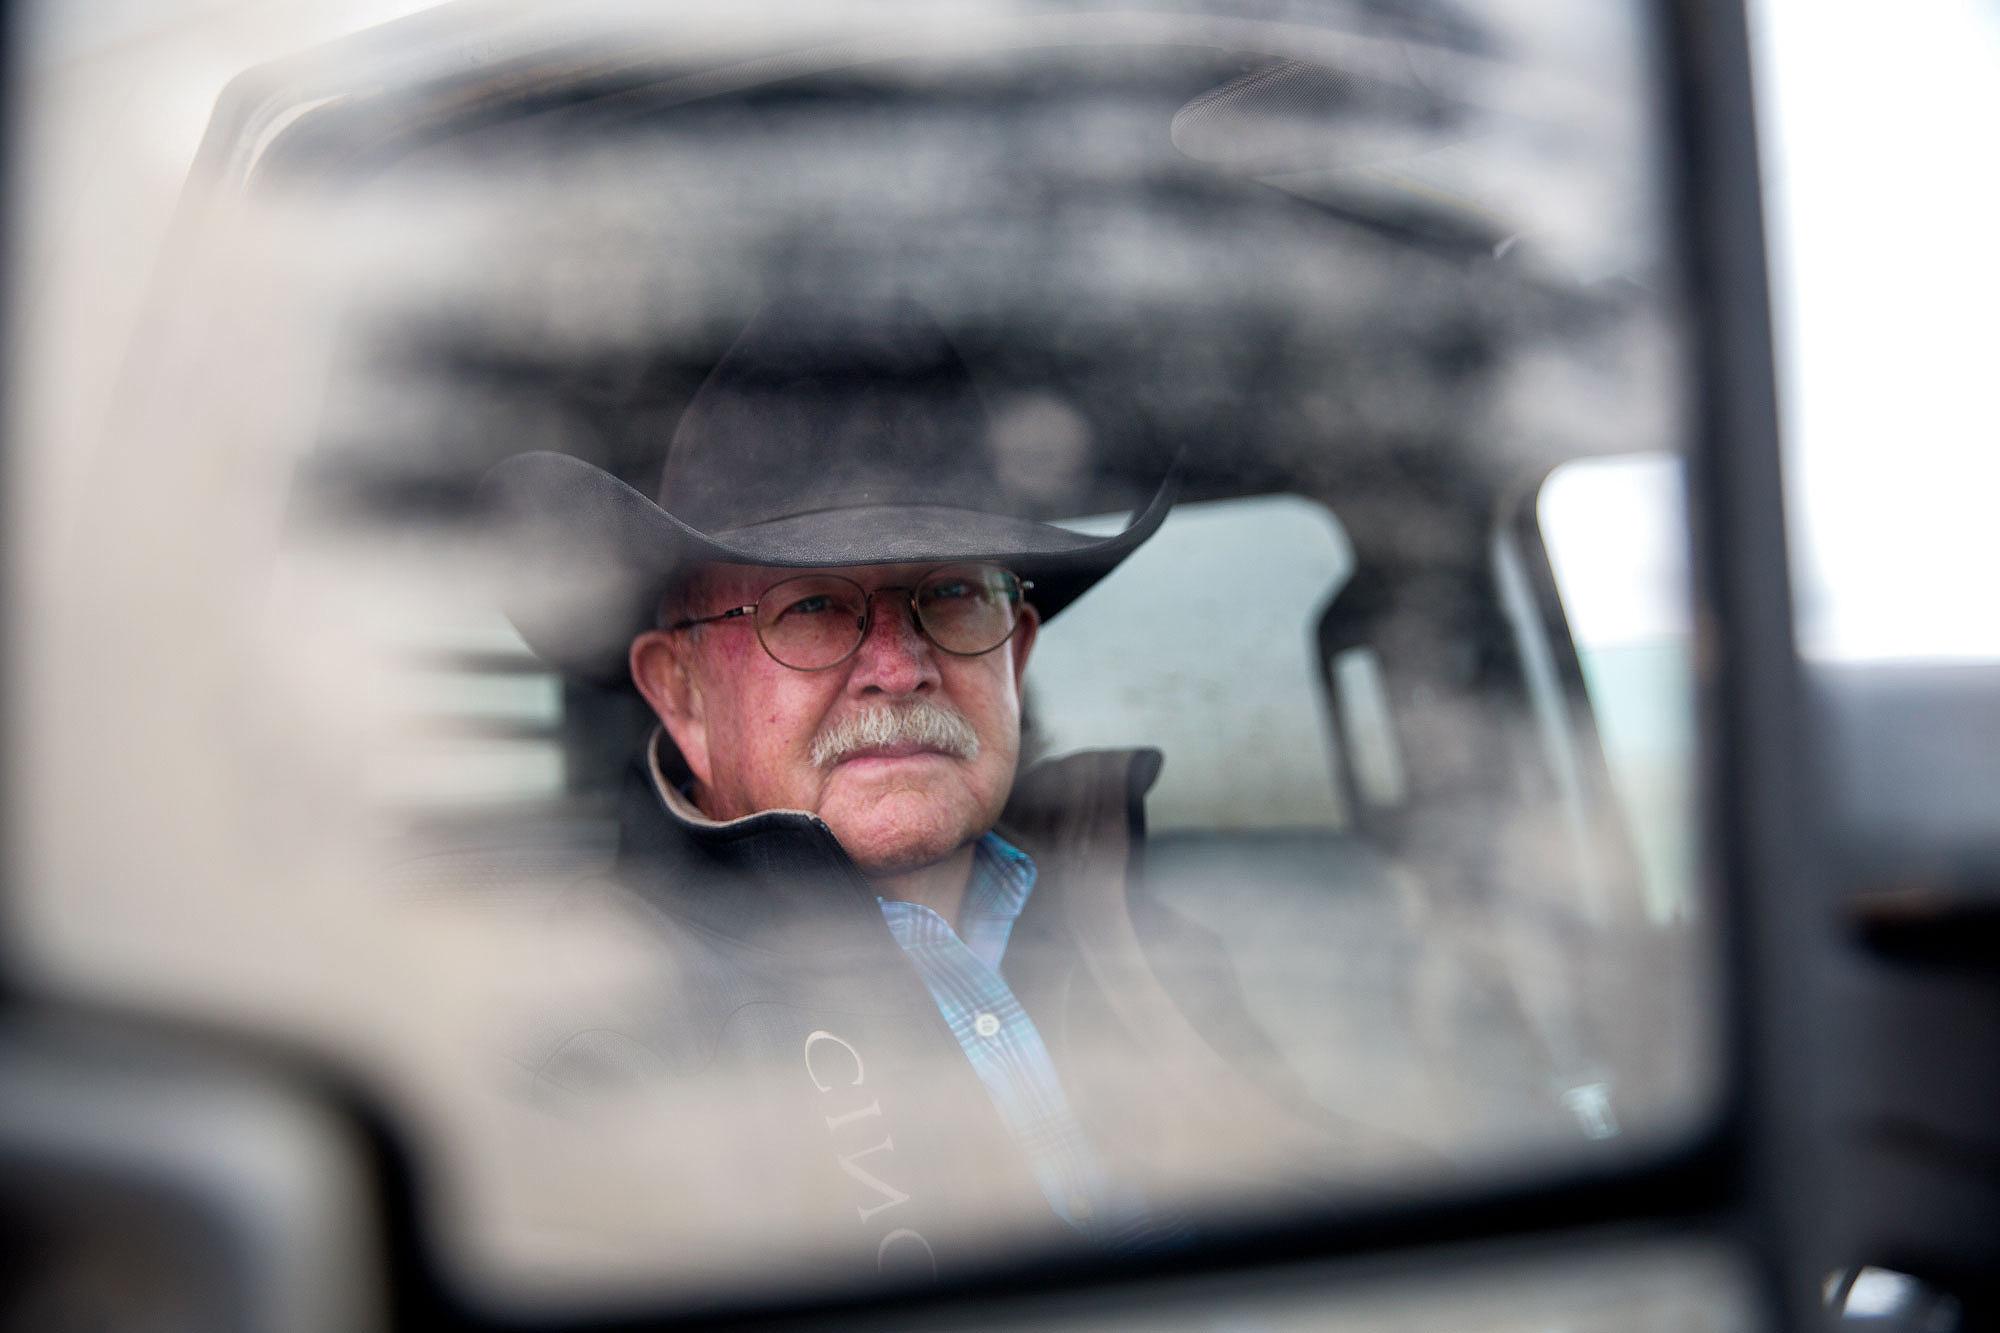 <p>Rancher and farmer Terry Swanson seen in the muddy rearview mirrorin his pickup truck as he showsjournalists around his land in Baca County on May 20, 2019.</p>